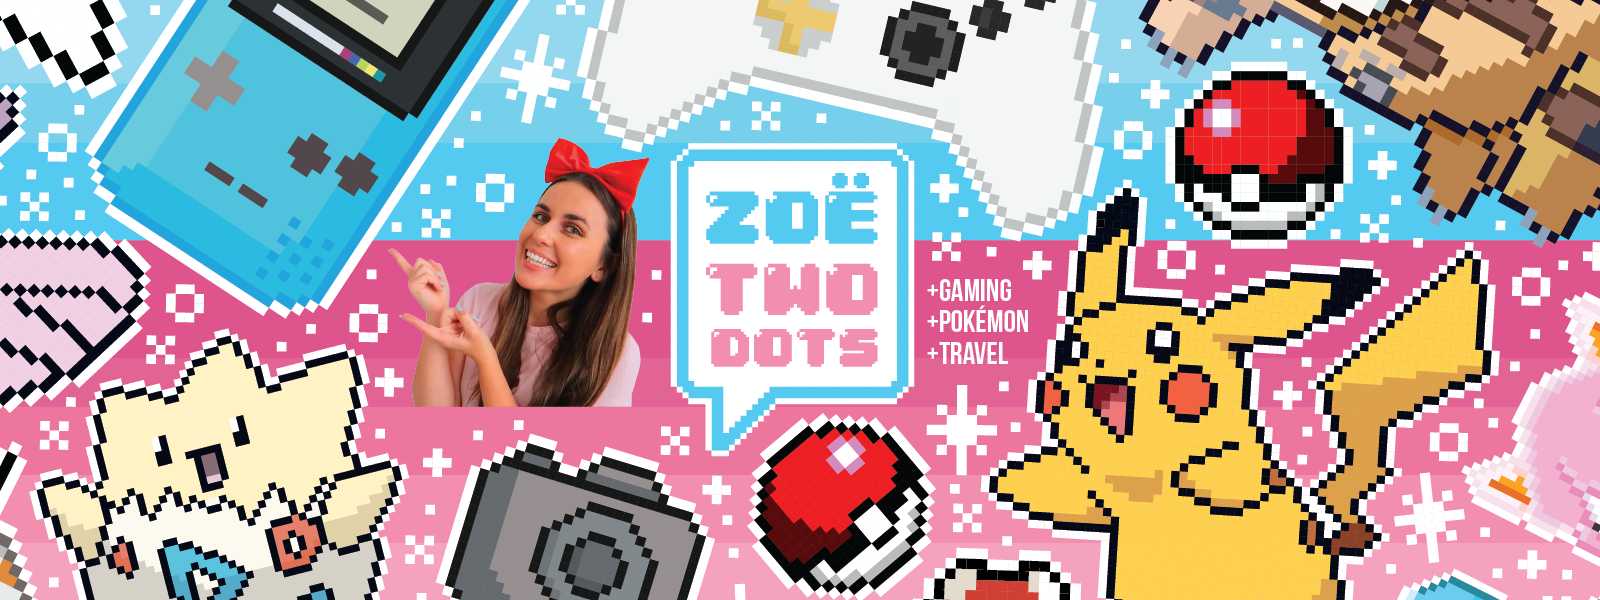 The official merch store for ZoeTwoDots.